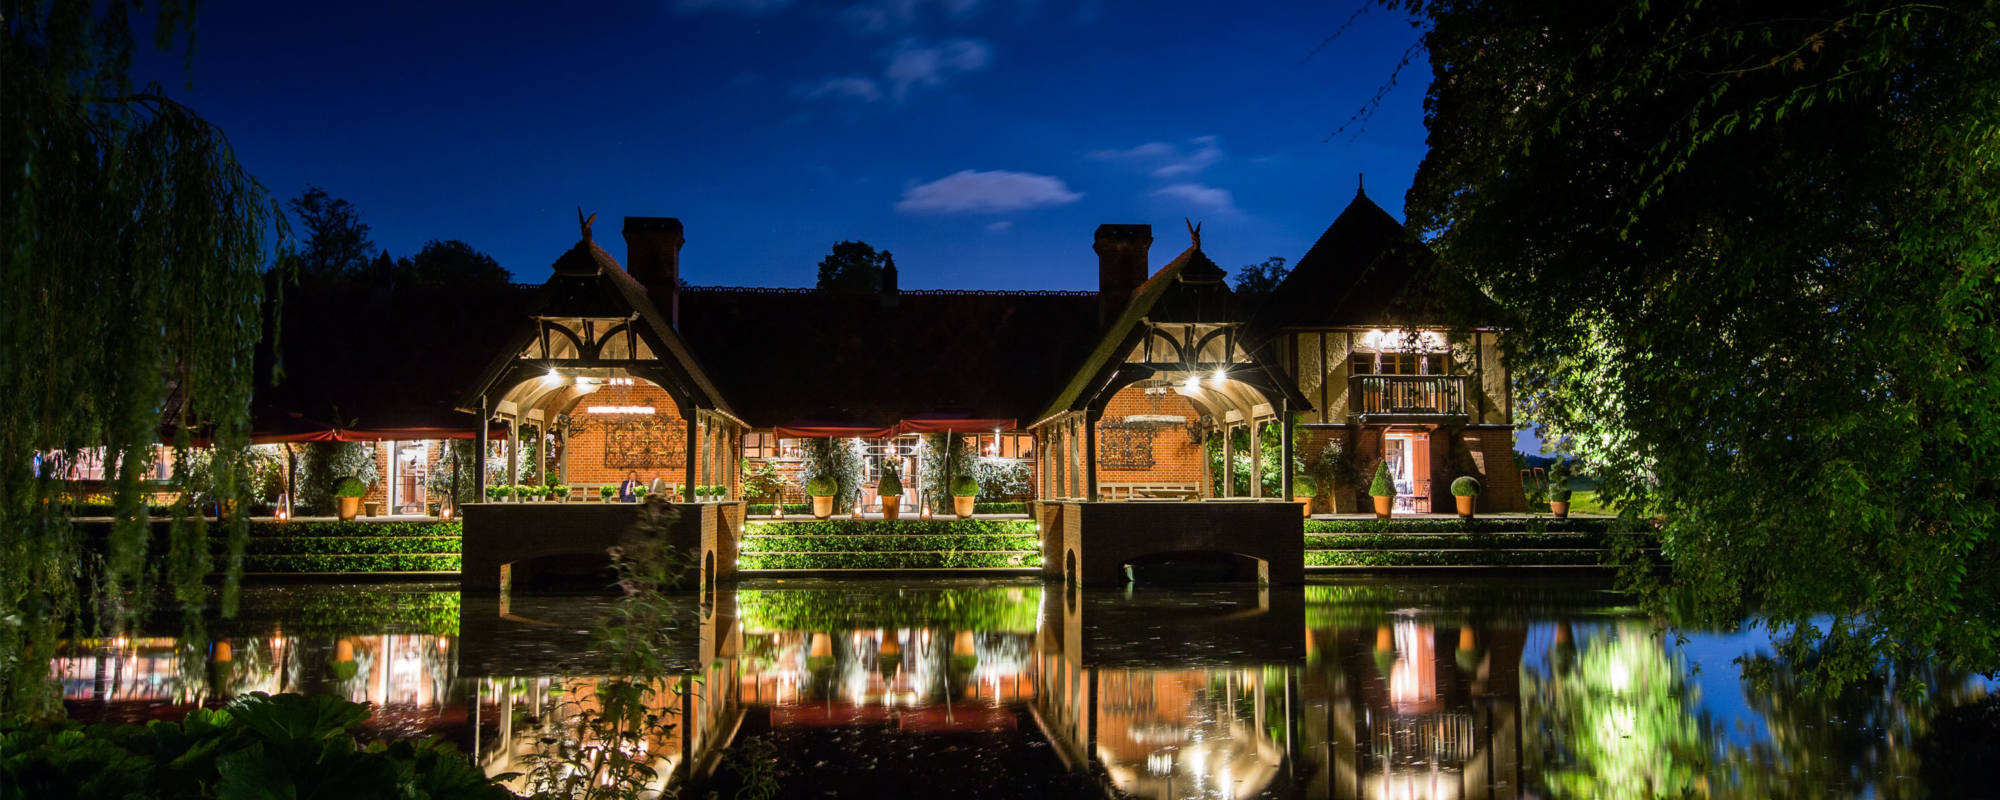 the Lakeside Terrace at the Dairy lit up at night